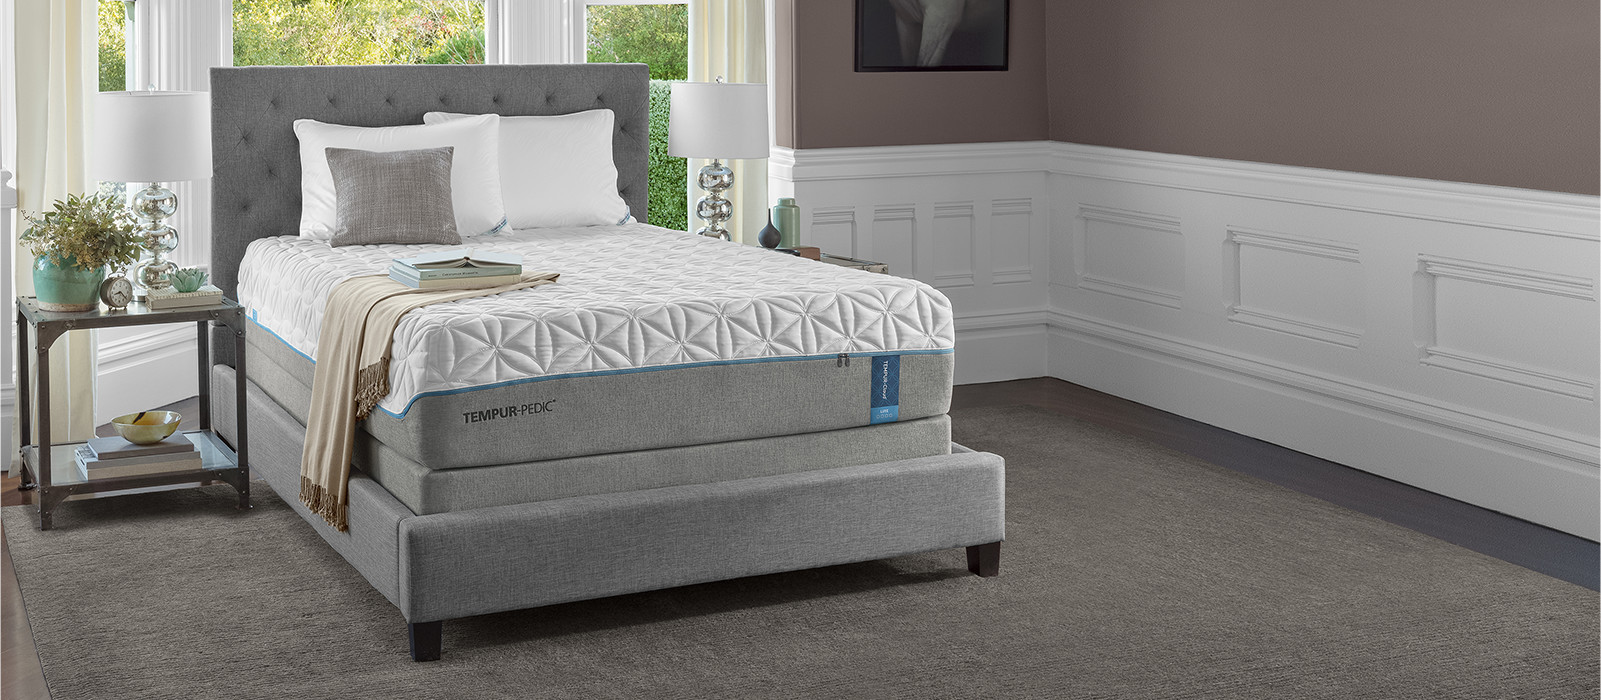 products mattress adjustable set medium item grandbed ergo and soft number pedic tempur king